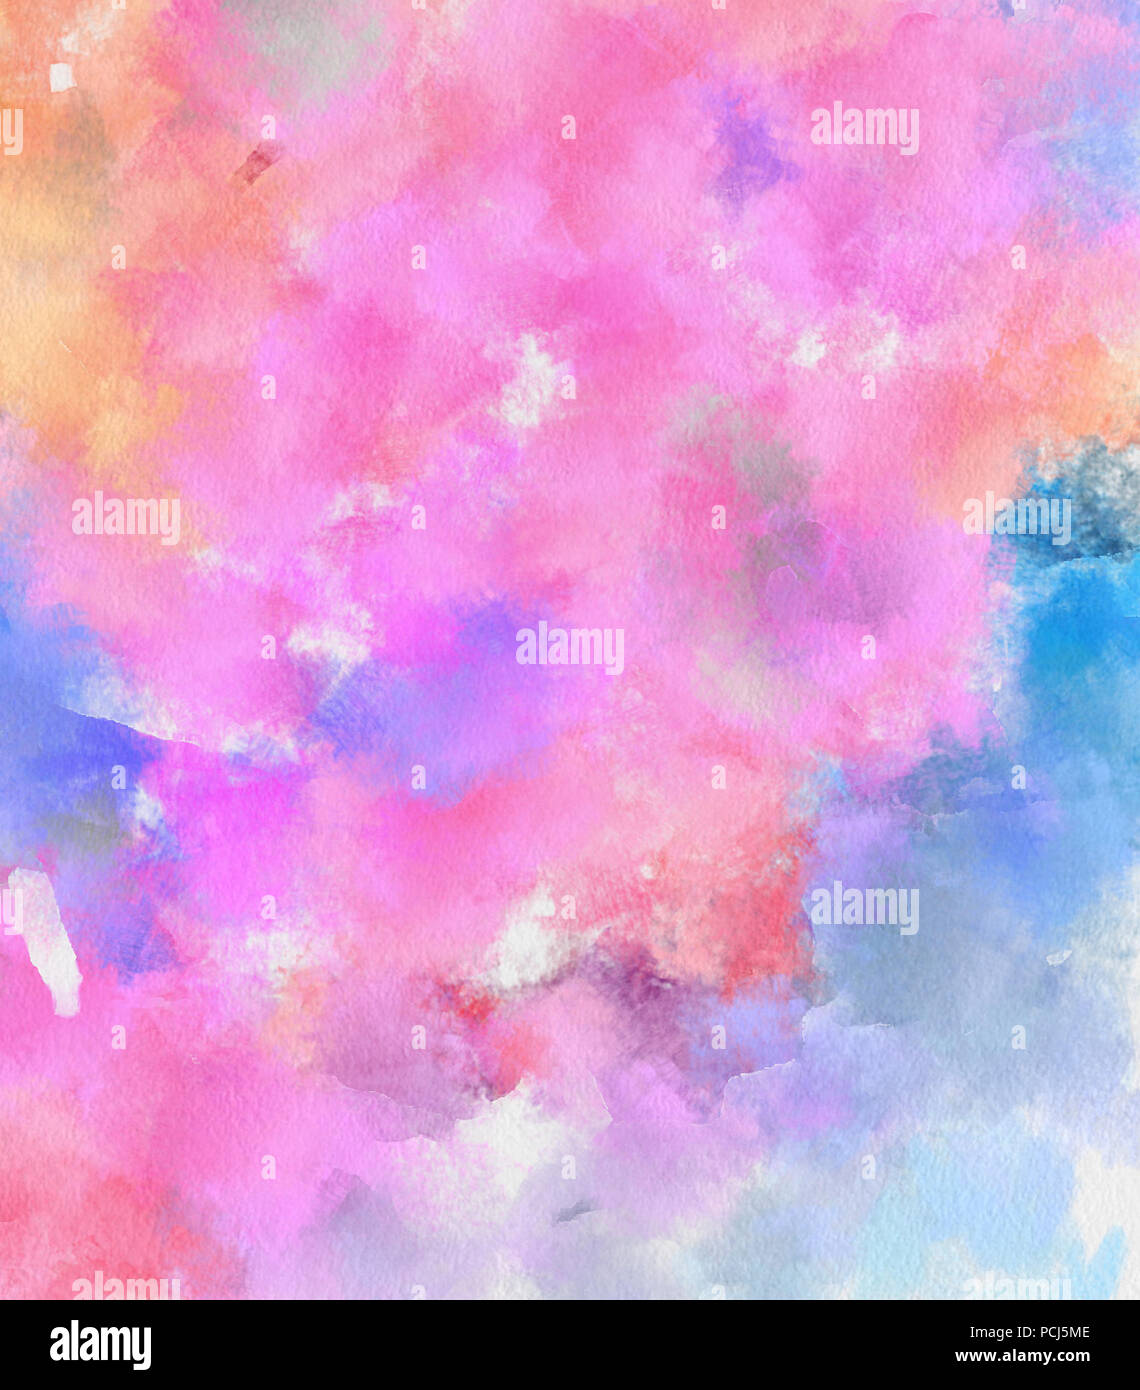 Abstract Texture Background Digital Design Painting